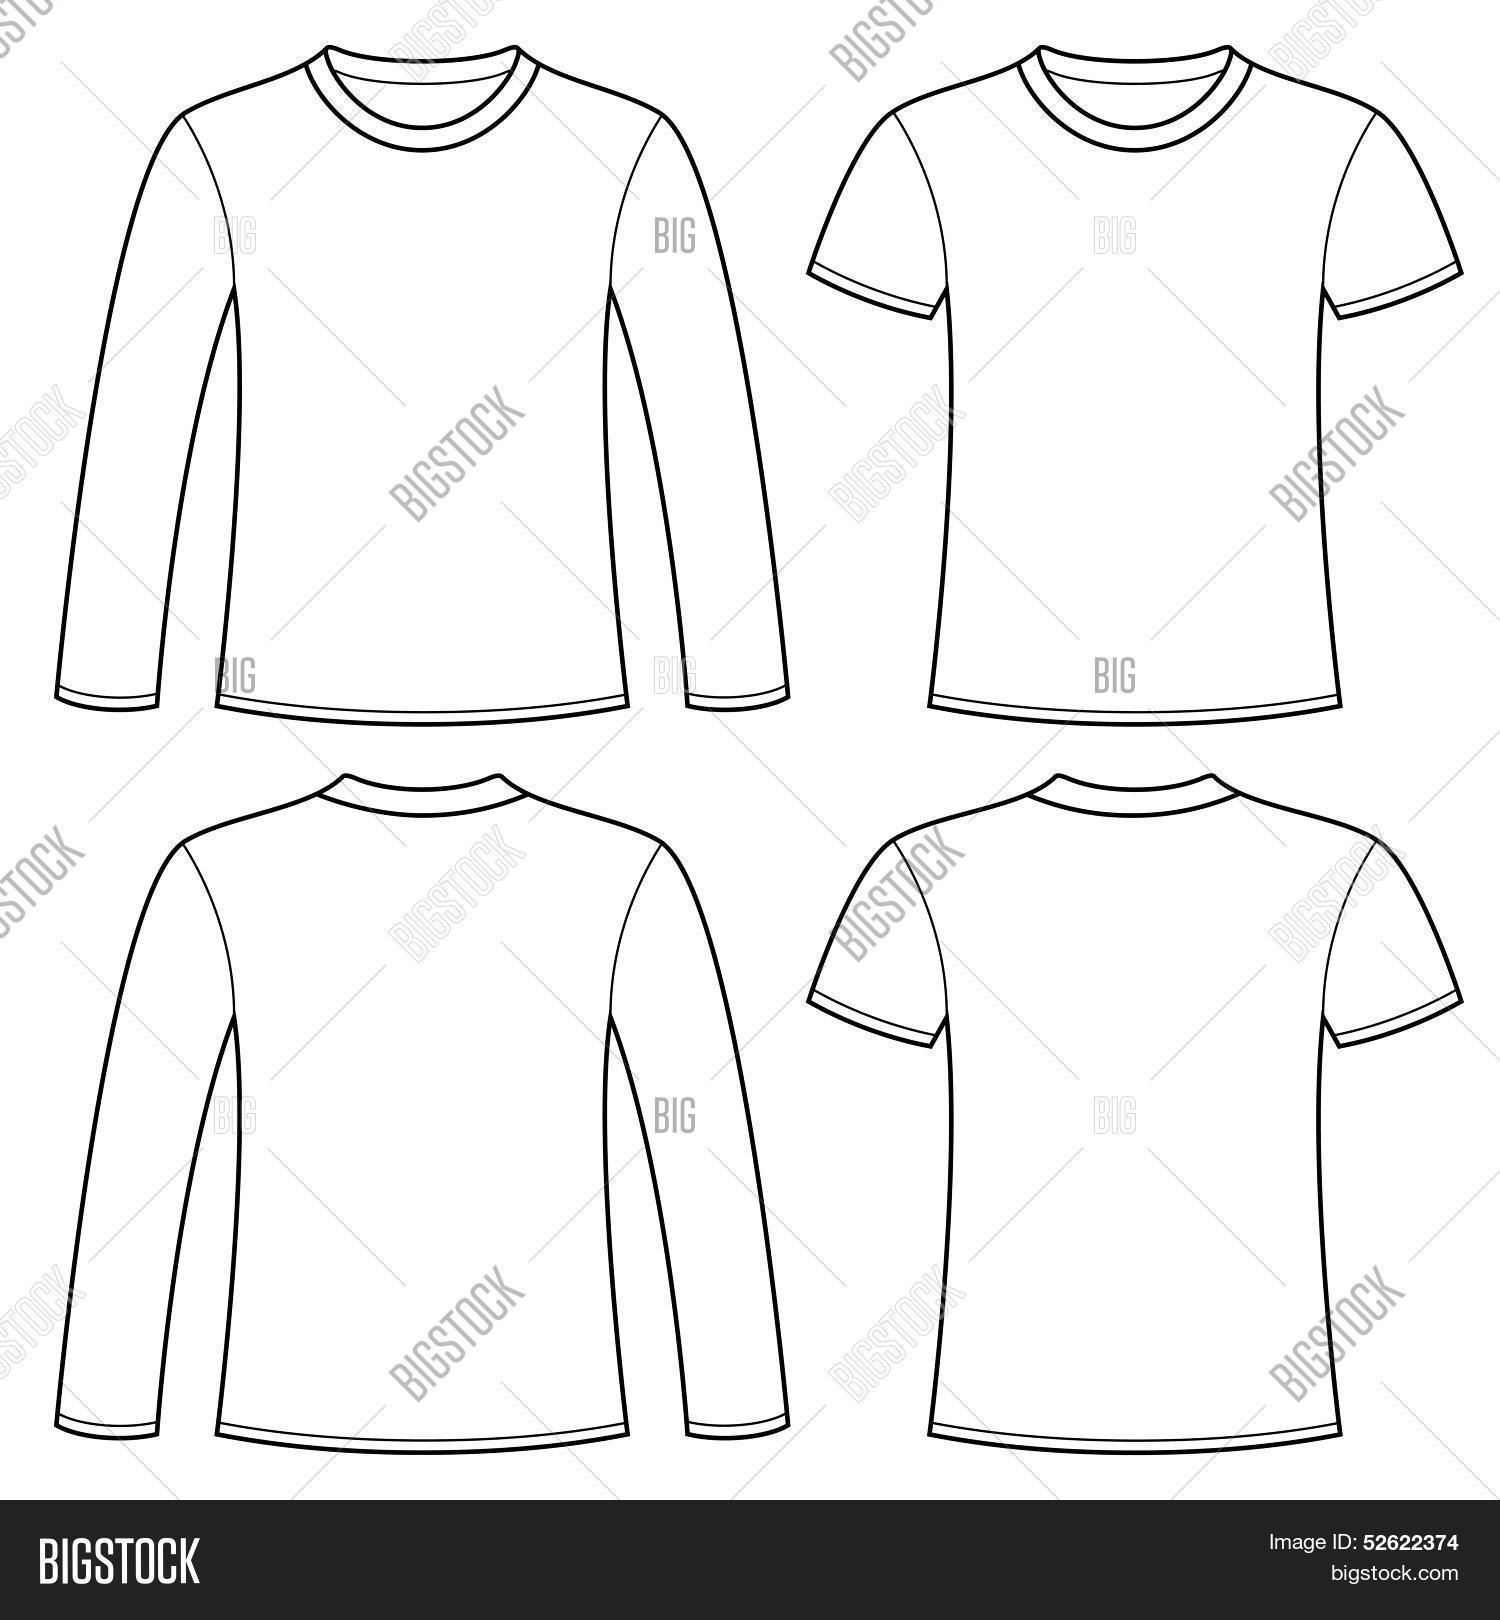 Long sleeved t shirt vector photo free trial bigstock long sleeved t shirt and t shirt template maxwellsz